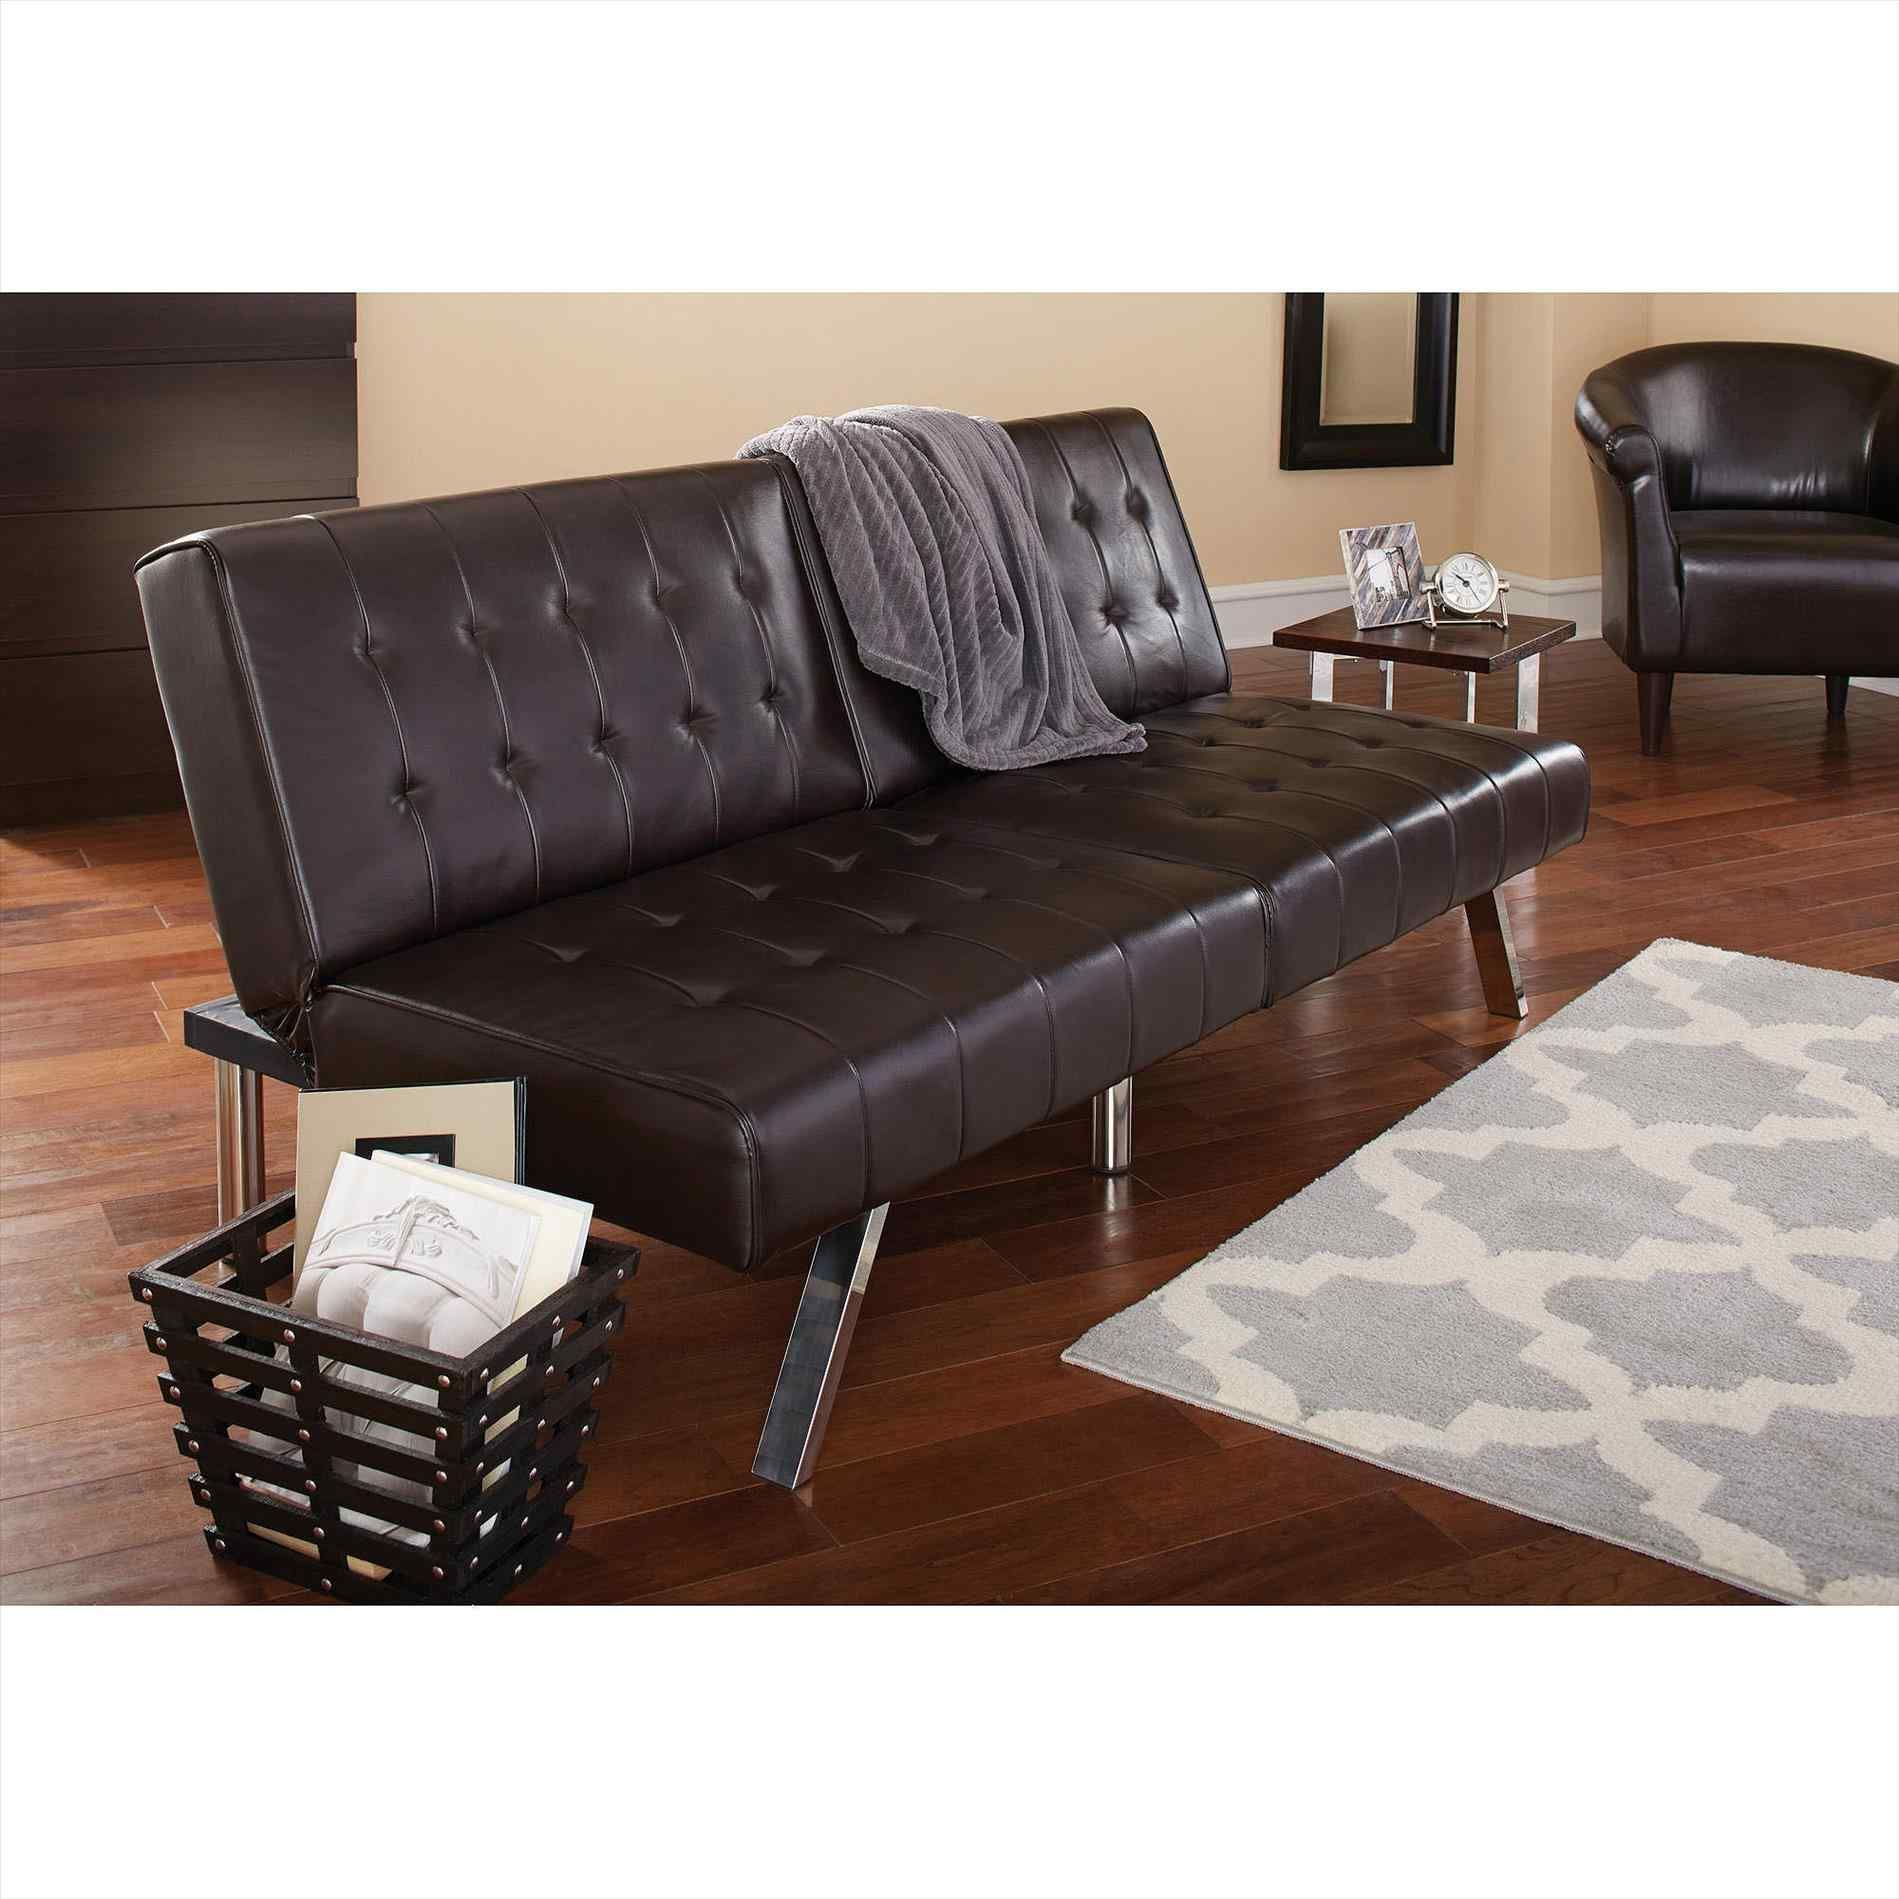 for futon roselawnlutheran sofas shop sofa design best furniture rated futons home top awesome sleeper